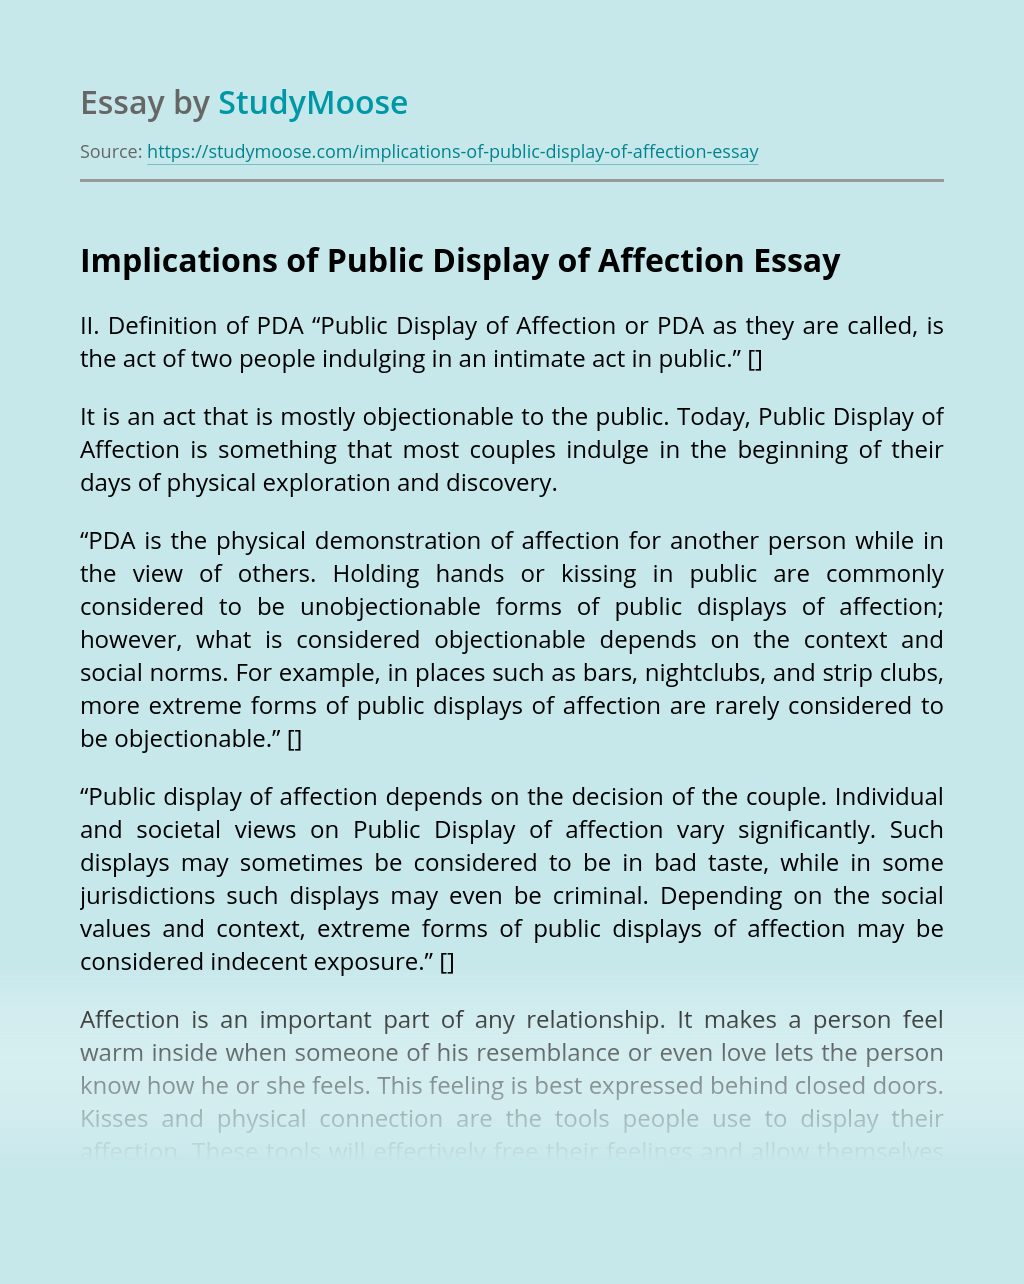 Implications of Public Display of Affection